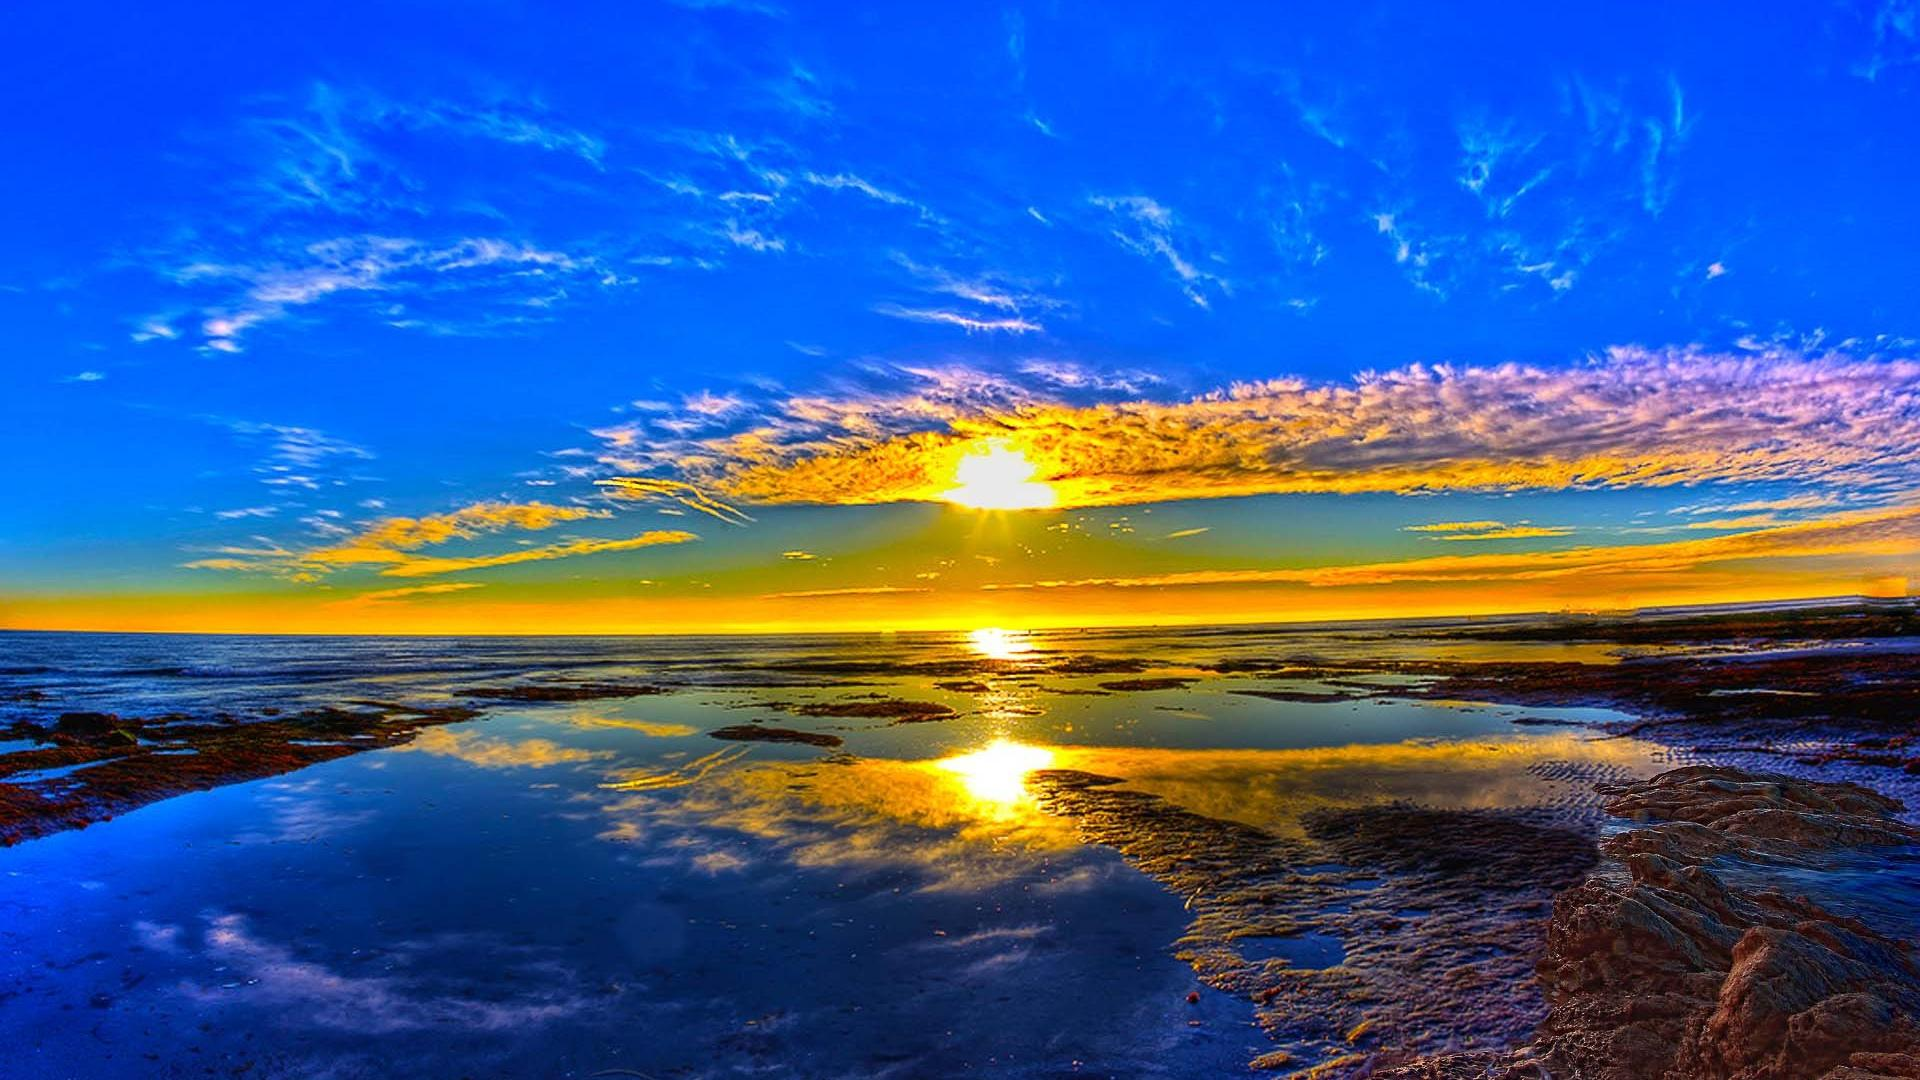 Sunrise Wallpaper; Sunrise Wallpaper; Sunrise Wallpaper ...